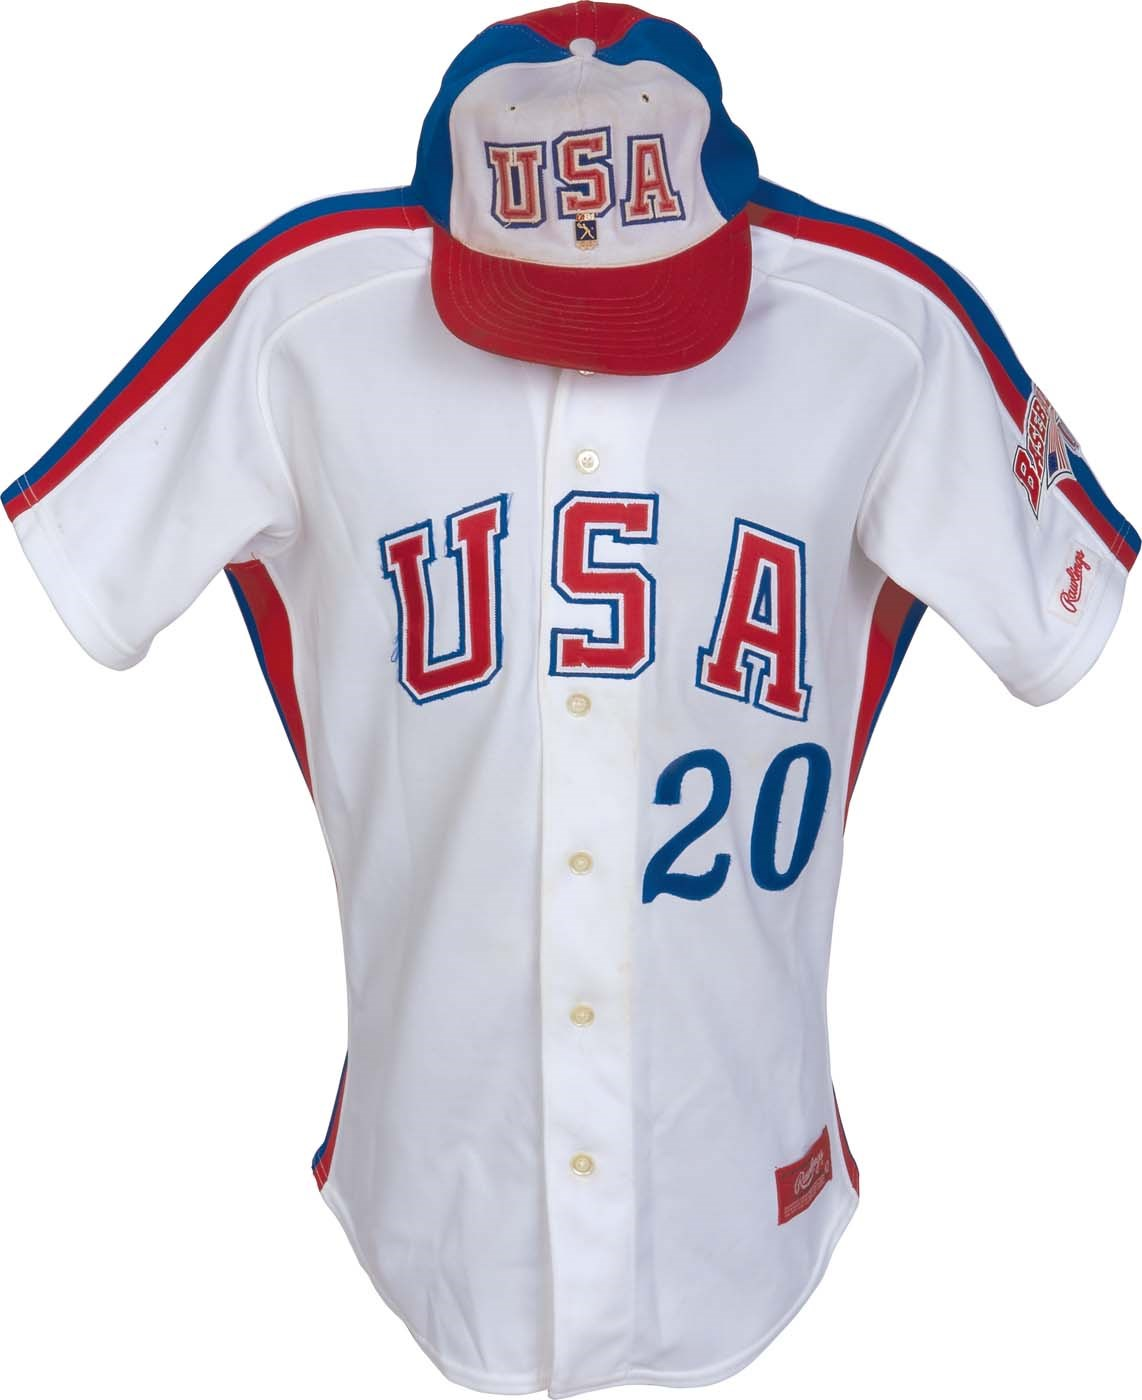 The 1984 USA Baseball Olympian Collection - Masters17